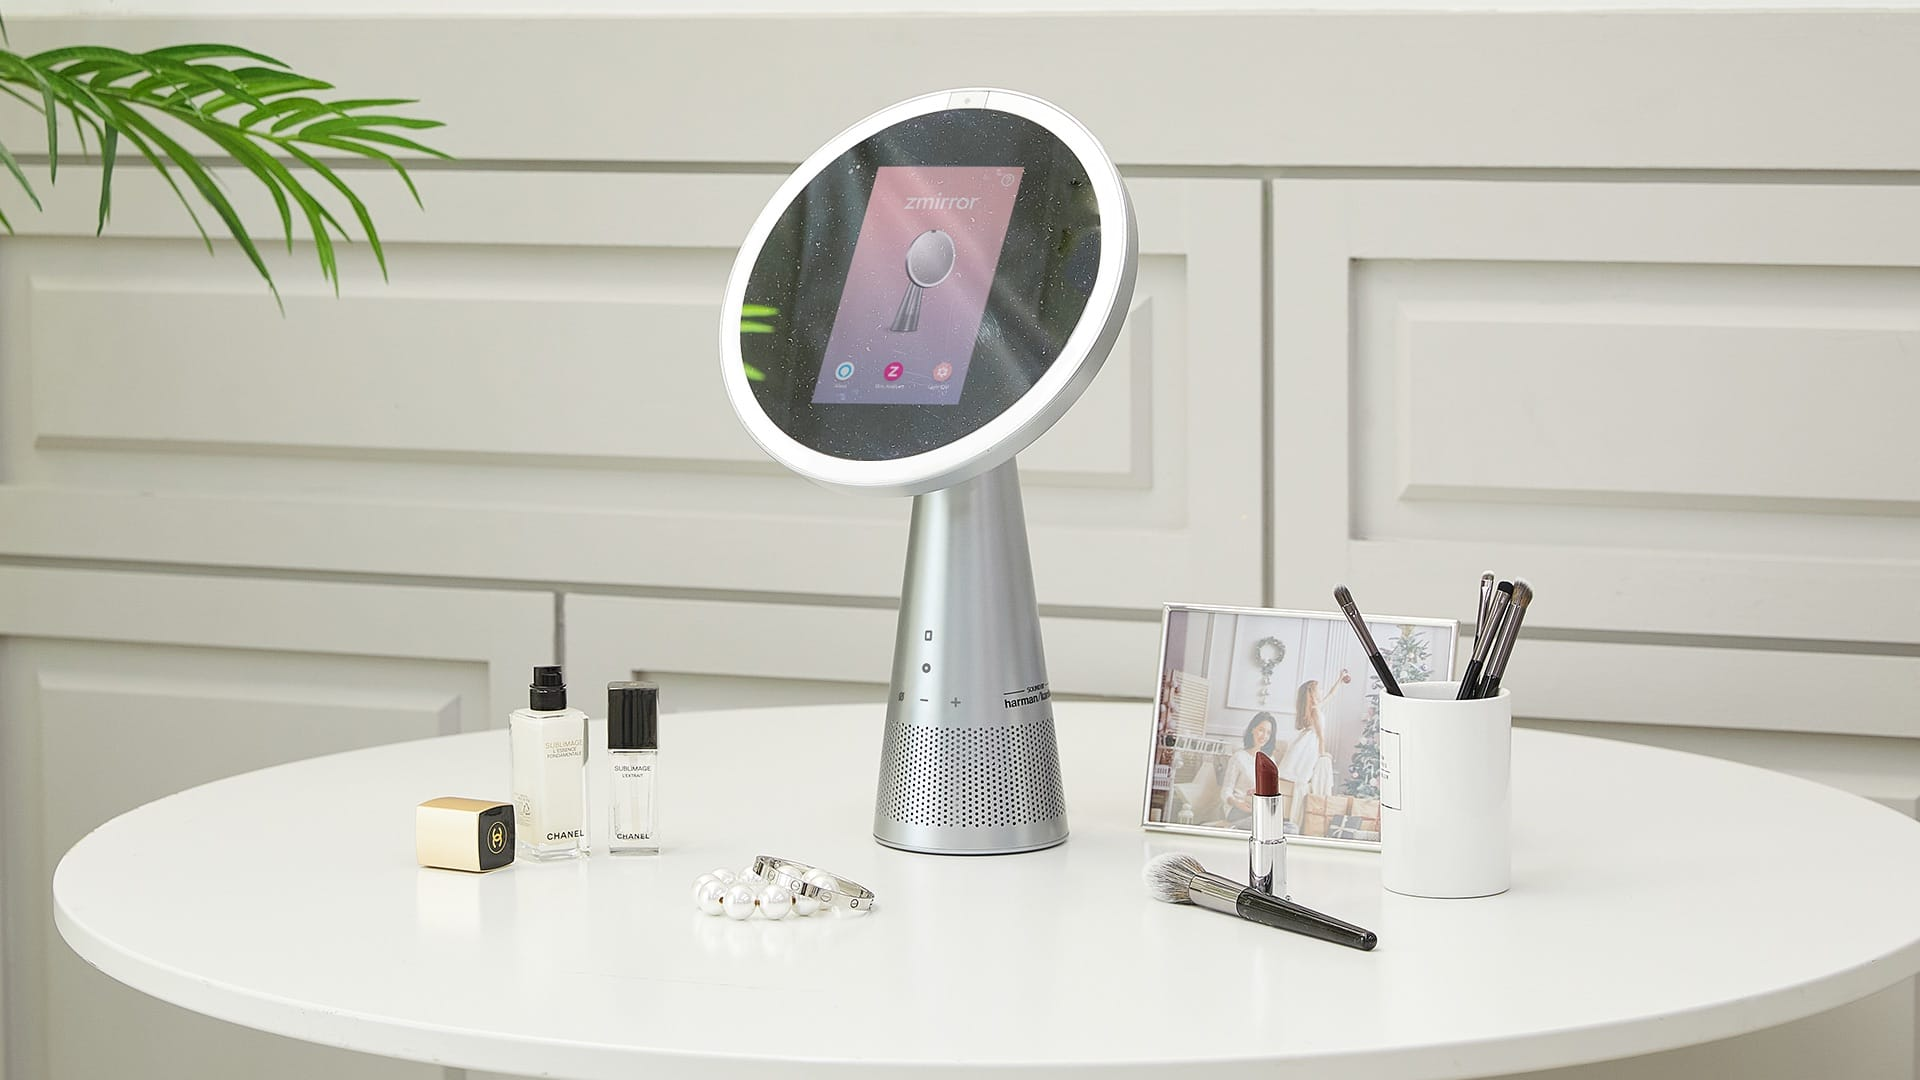 Zmirror: All-in-1 Smart Mirror & Personal Assistant